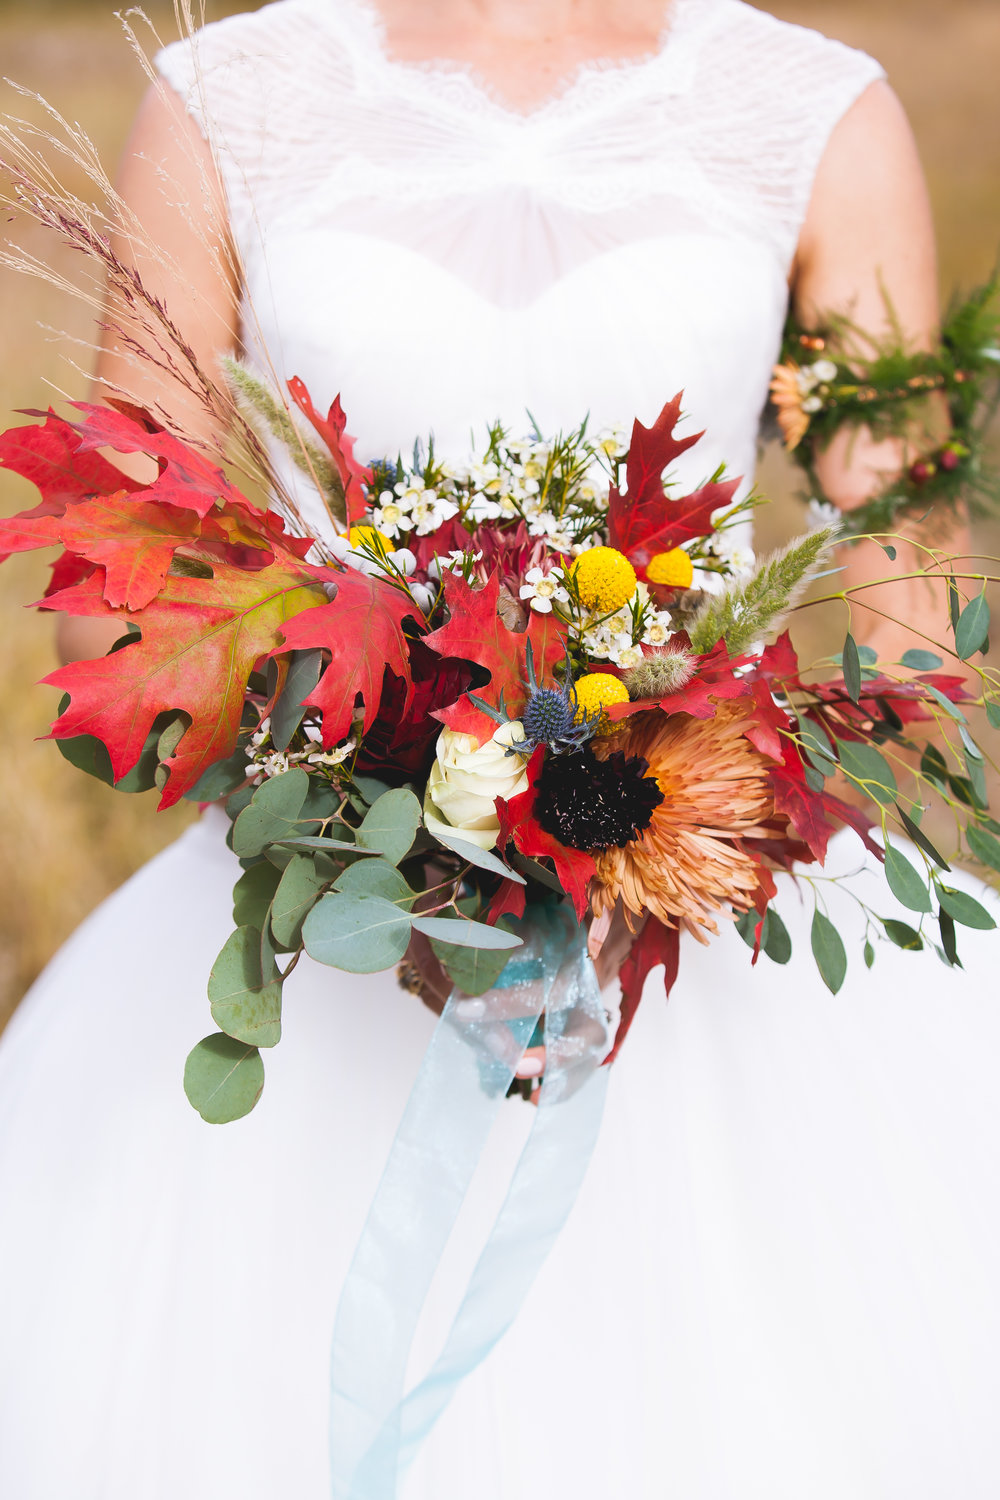 april's garden arm band for bride  autumn floral wedding  bridal flowers  durango florist  durango wedding